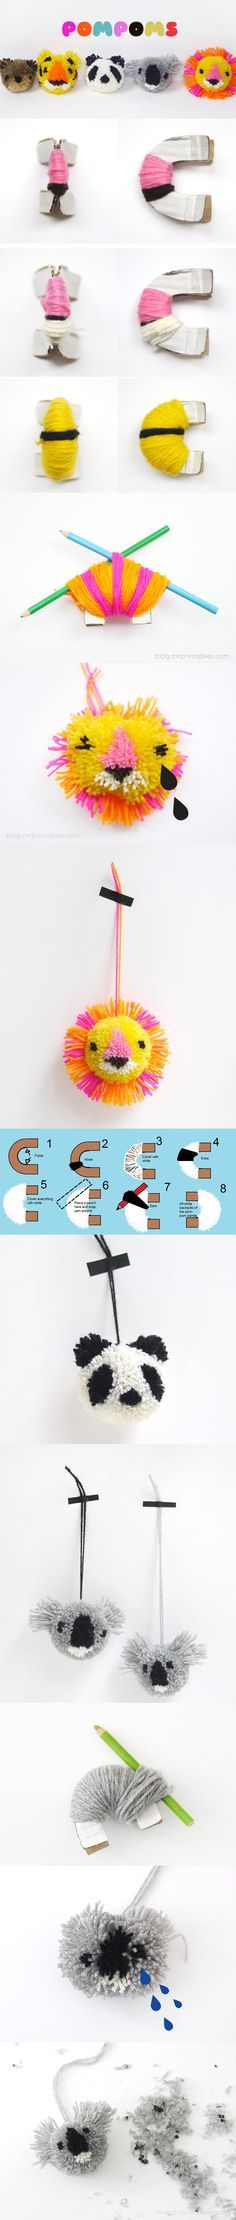 Pom Pom Ideas and Inspiration – pompons mode et animaux Cute Crafts, Diy And Crafts, Arts And Crafts, Decor Crafts, Pom Pom Crafts, Yarn Crafts, Diy For Kids, Crafts For Kids, Pom Pom Animals